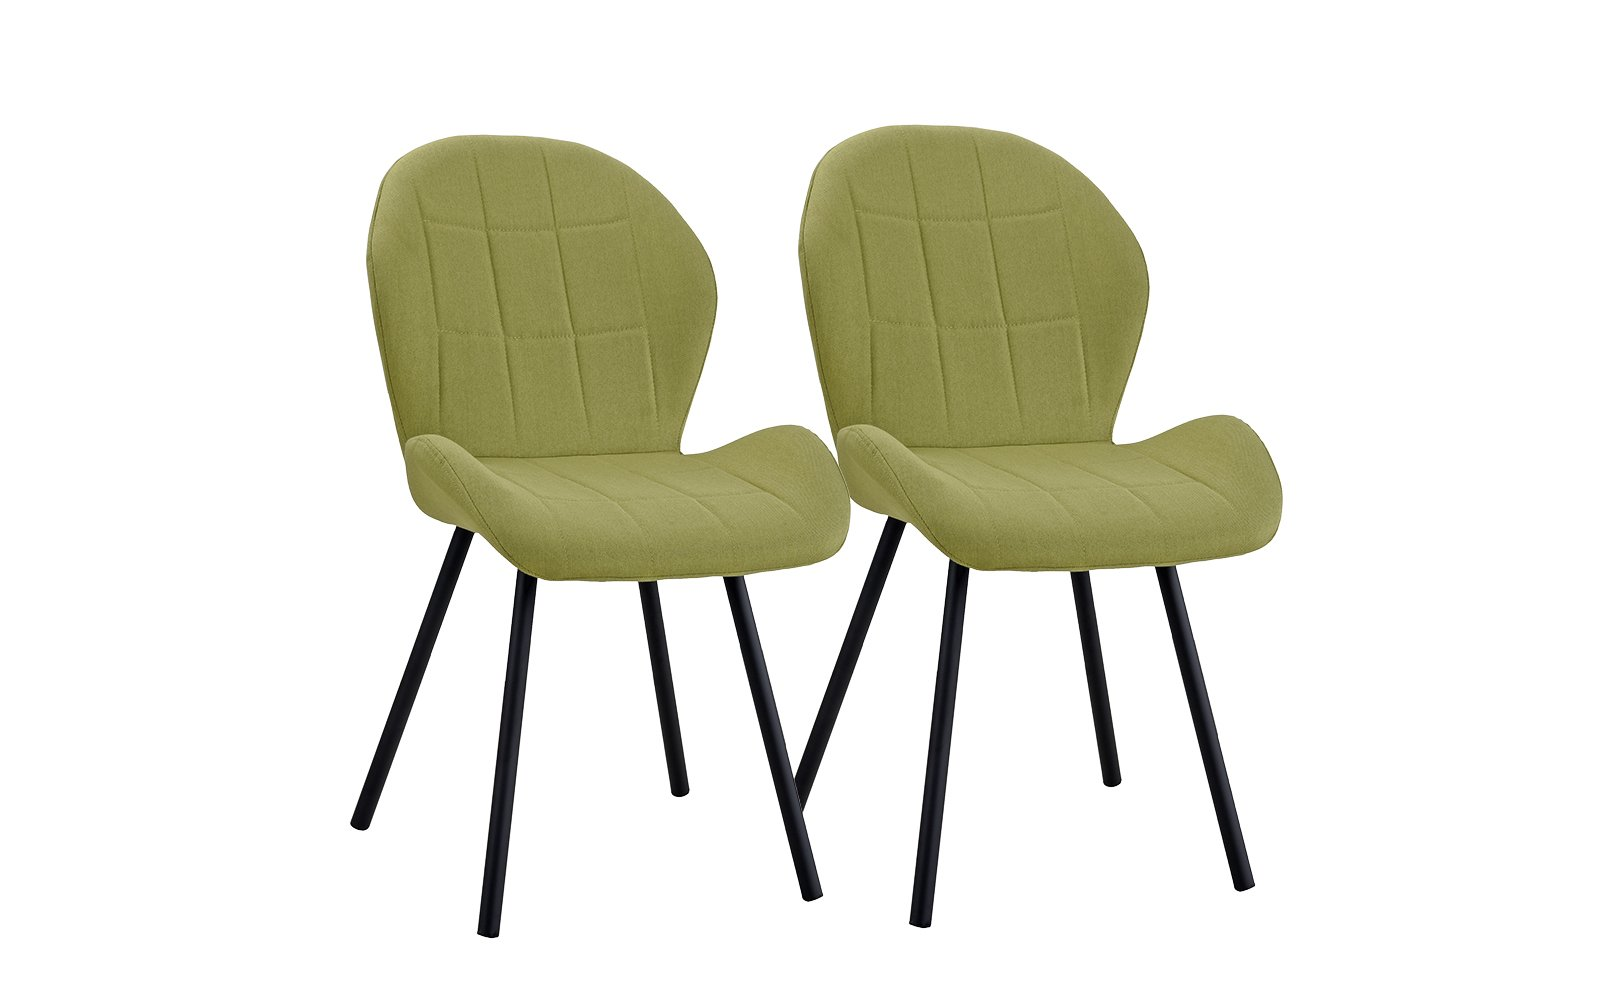 Upholstered Set of 2 Dining Chairs, 2 Piece Kitchen Chairs (Green)